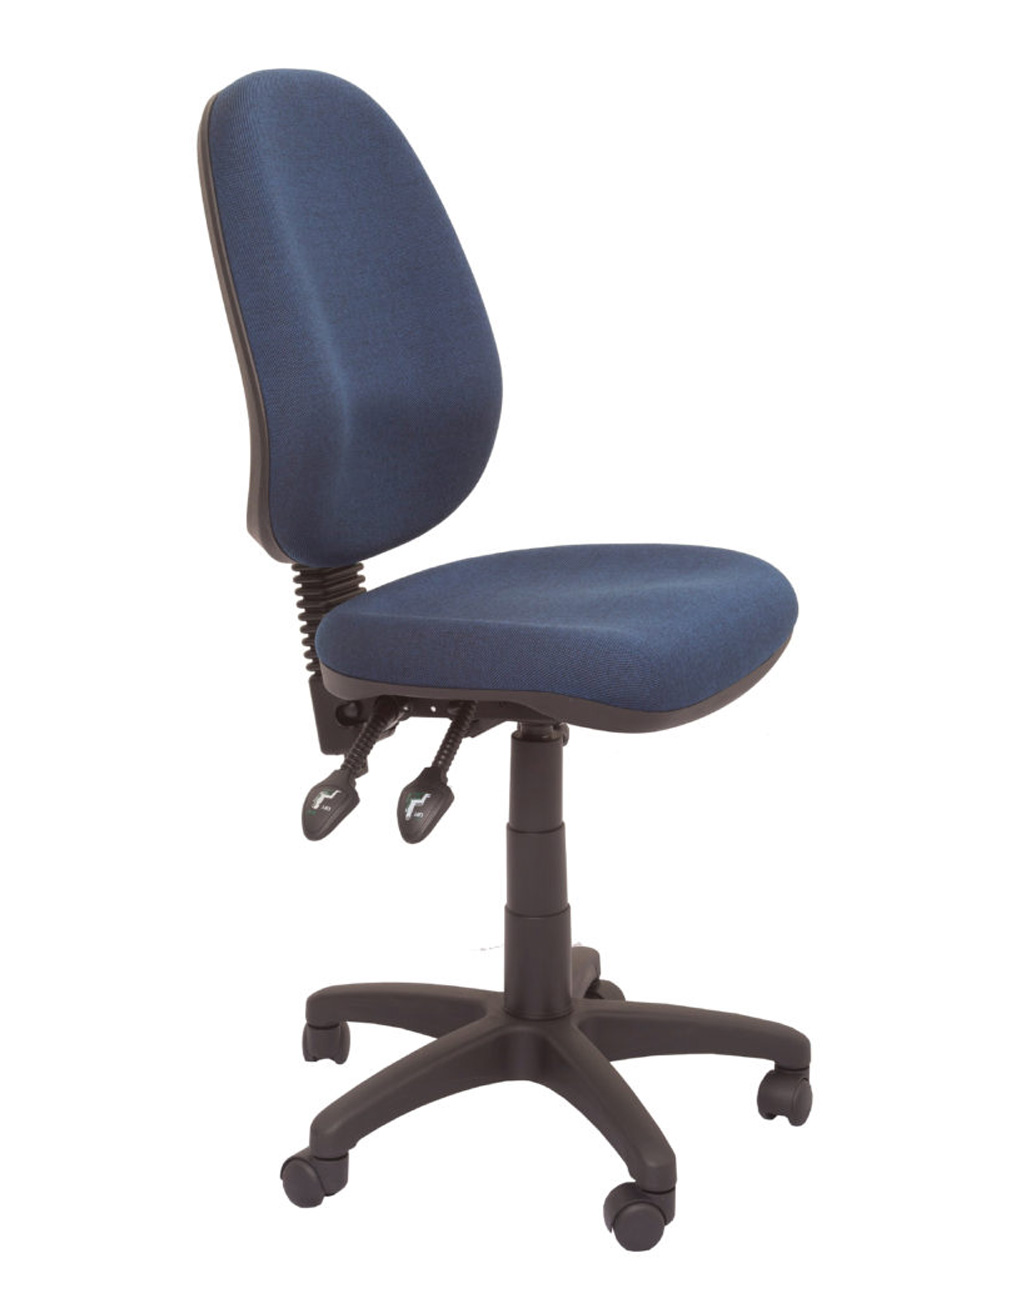 View High Back Ergonomic Office Chair 3 Lever Epic